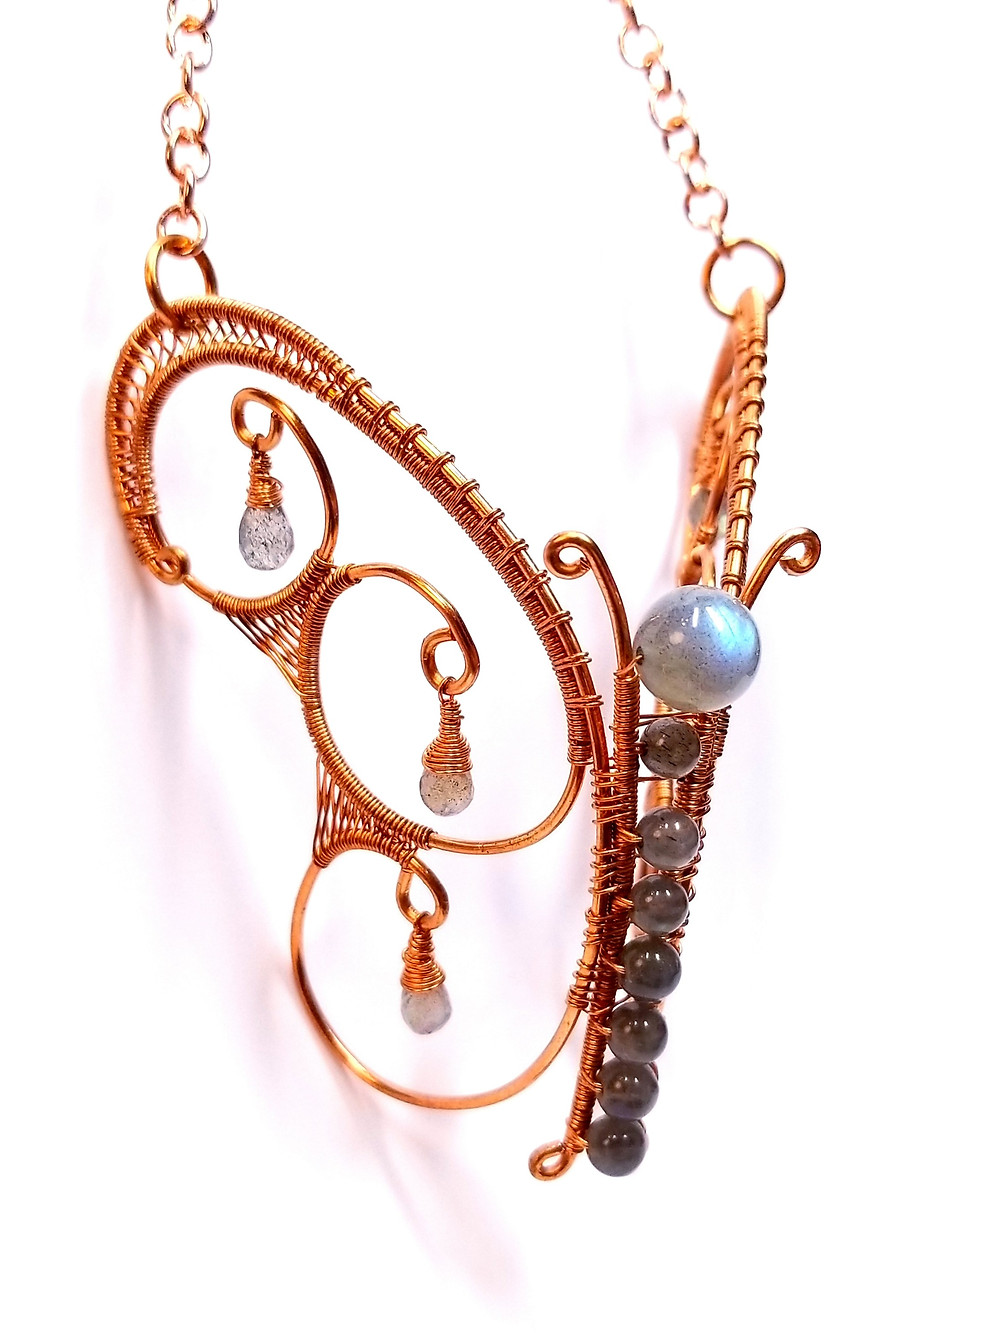 Copper wire weaving butterfly with labradorite accent beads.